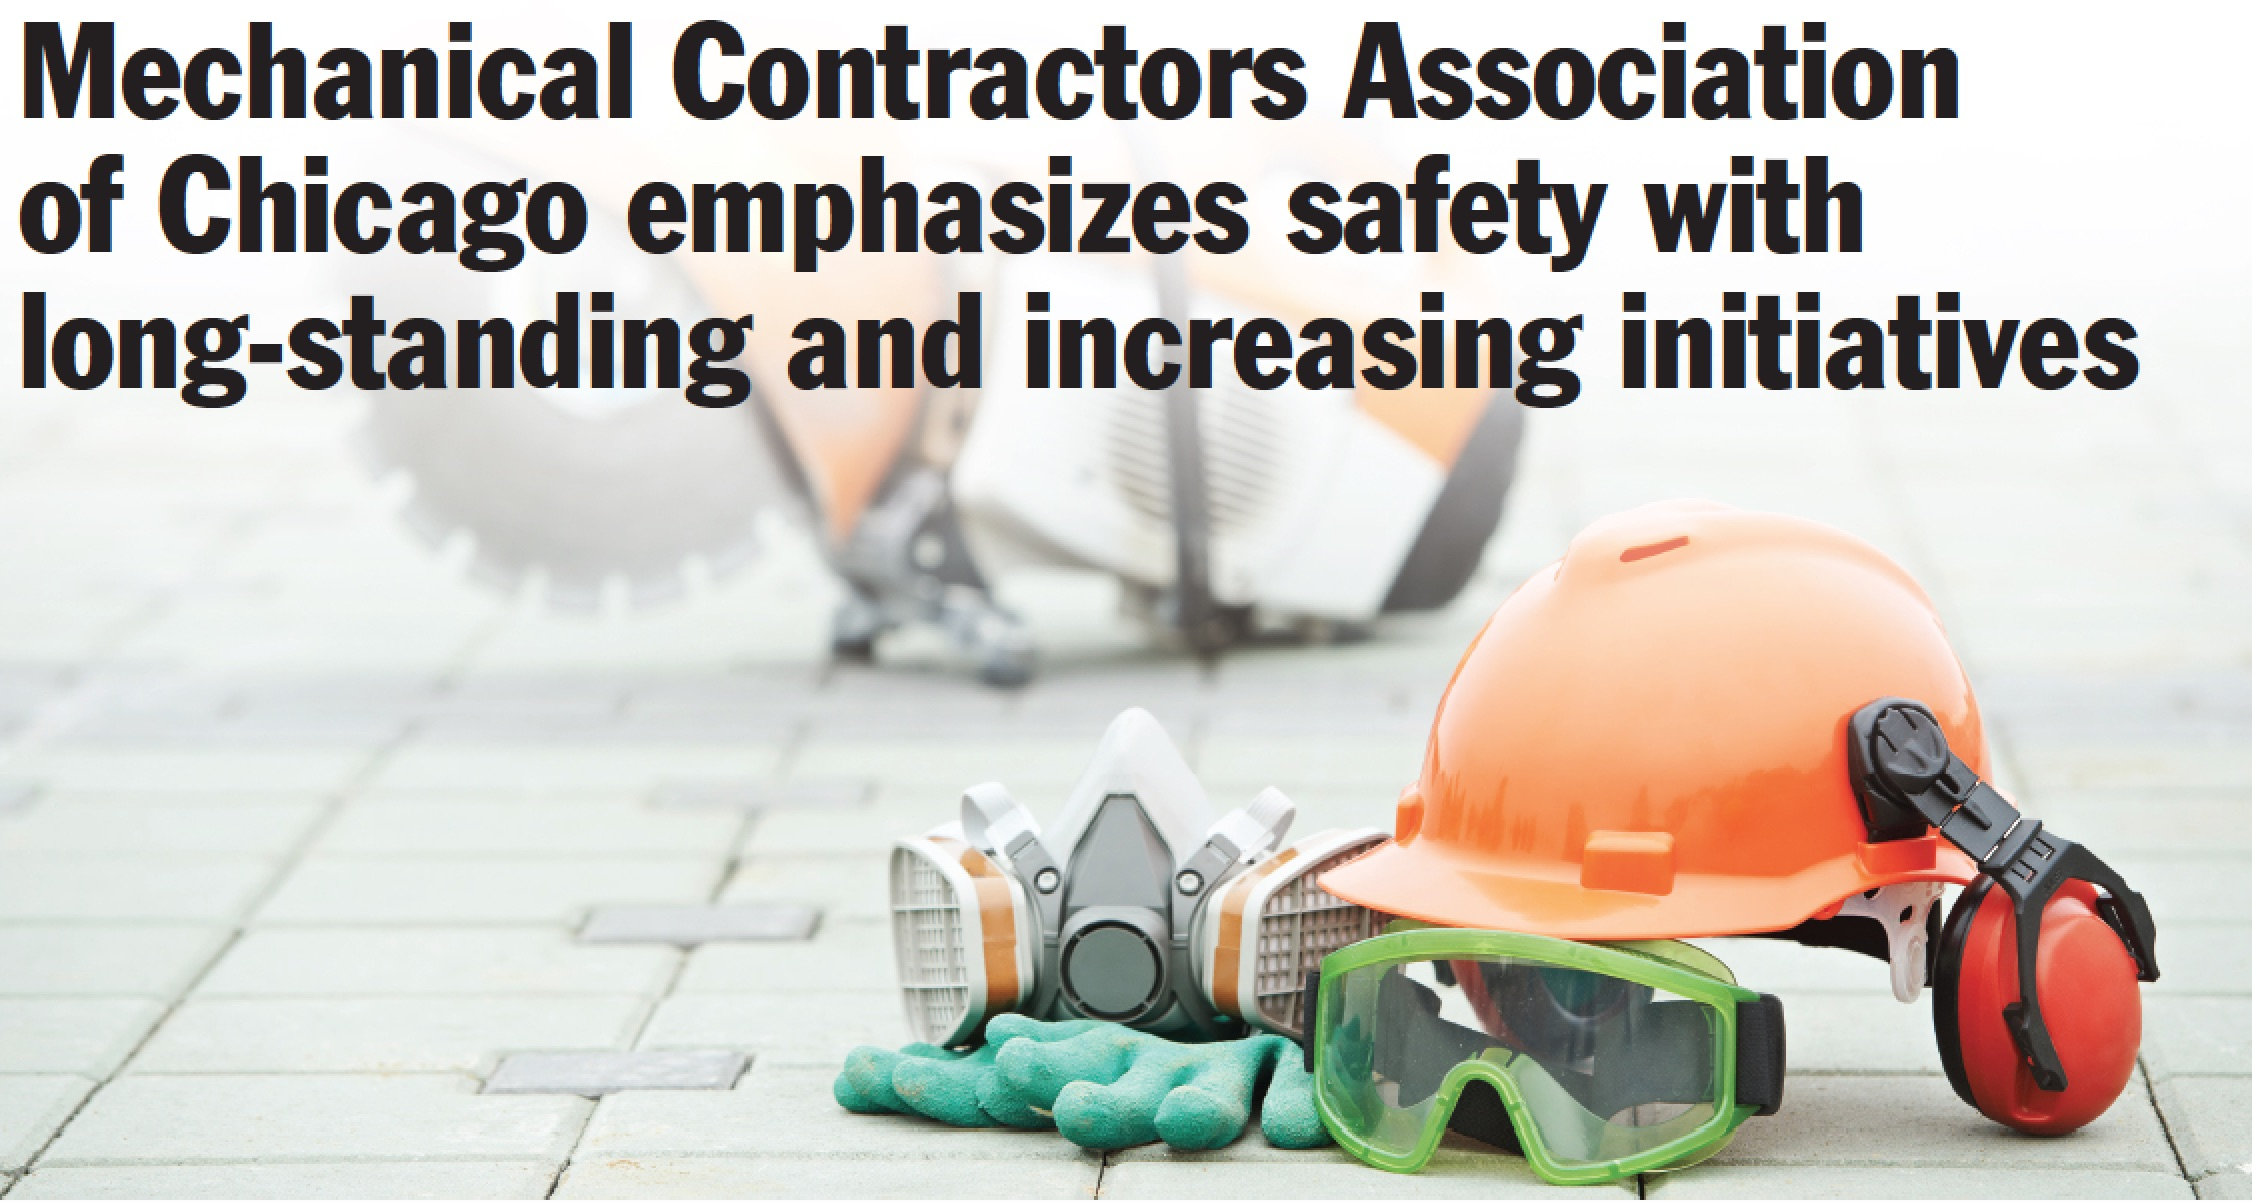 Mechanical Contractors Association of Chicago emphasizes safety with